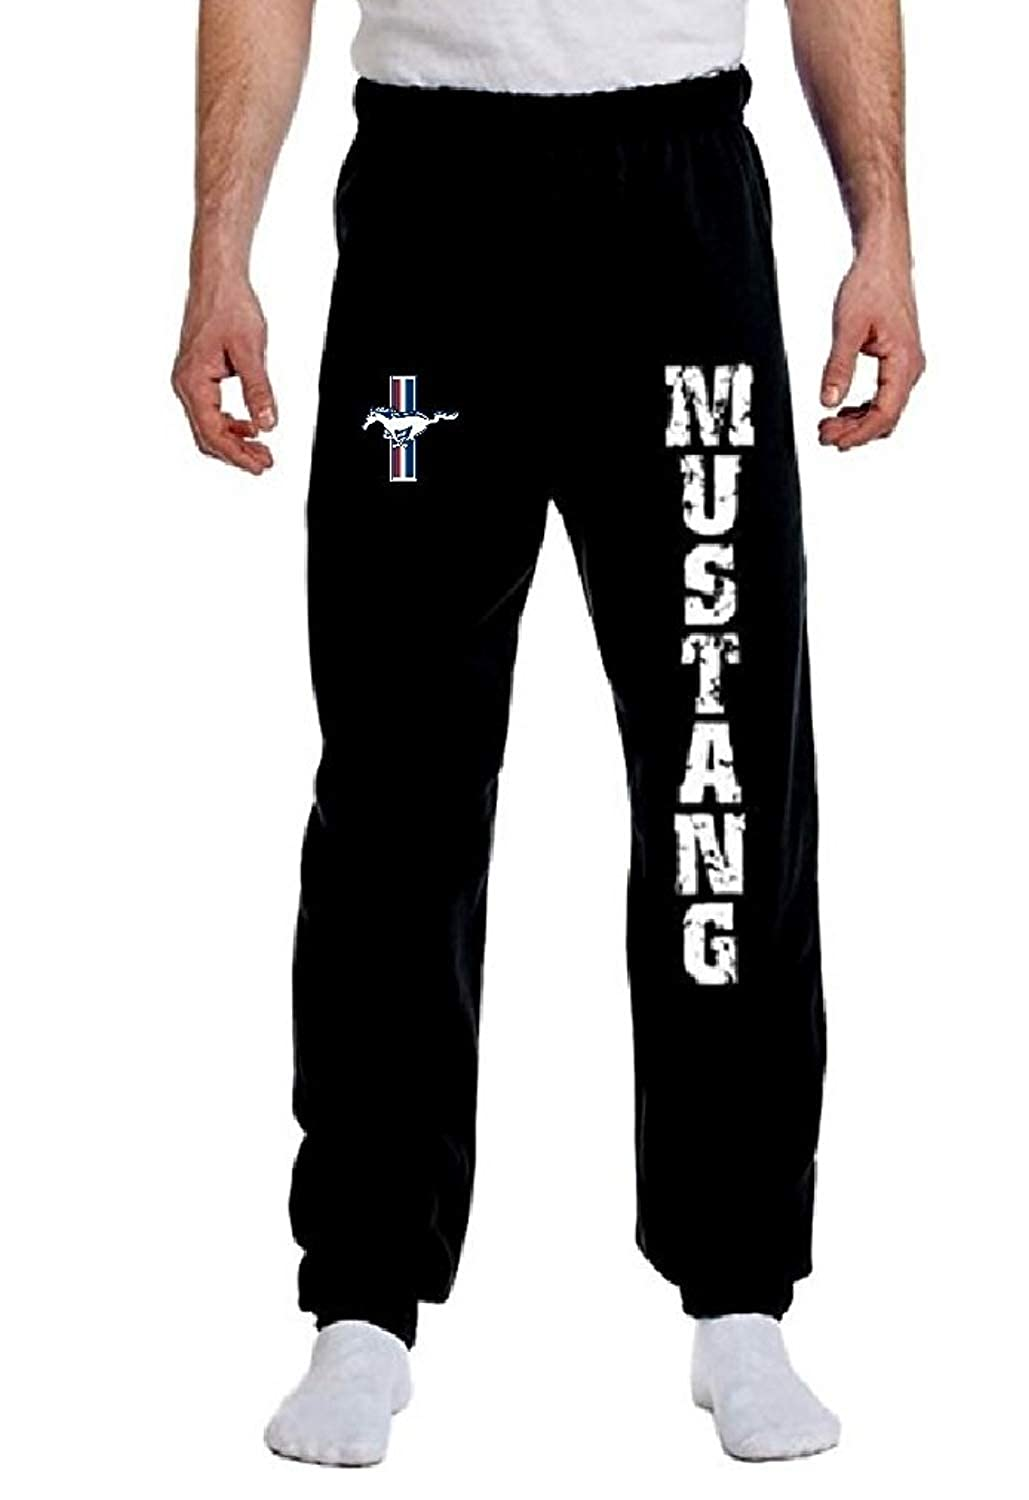 Amazon.com: Ford Mustang Sweatpants Vertical Ford Motor ...